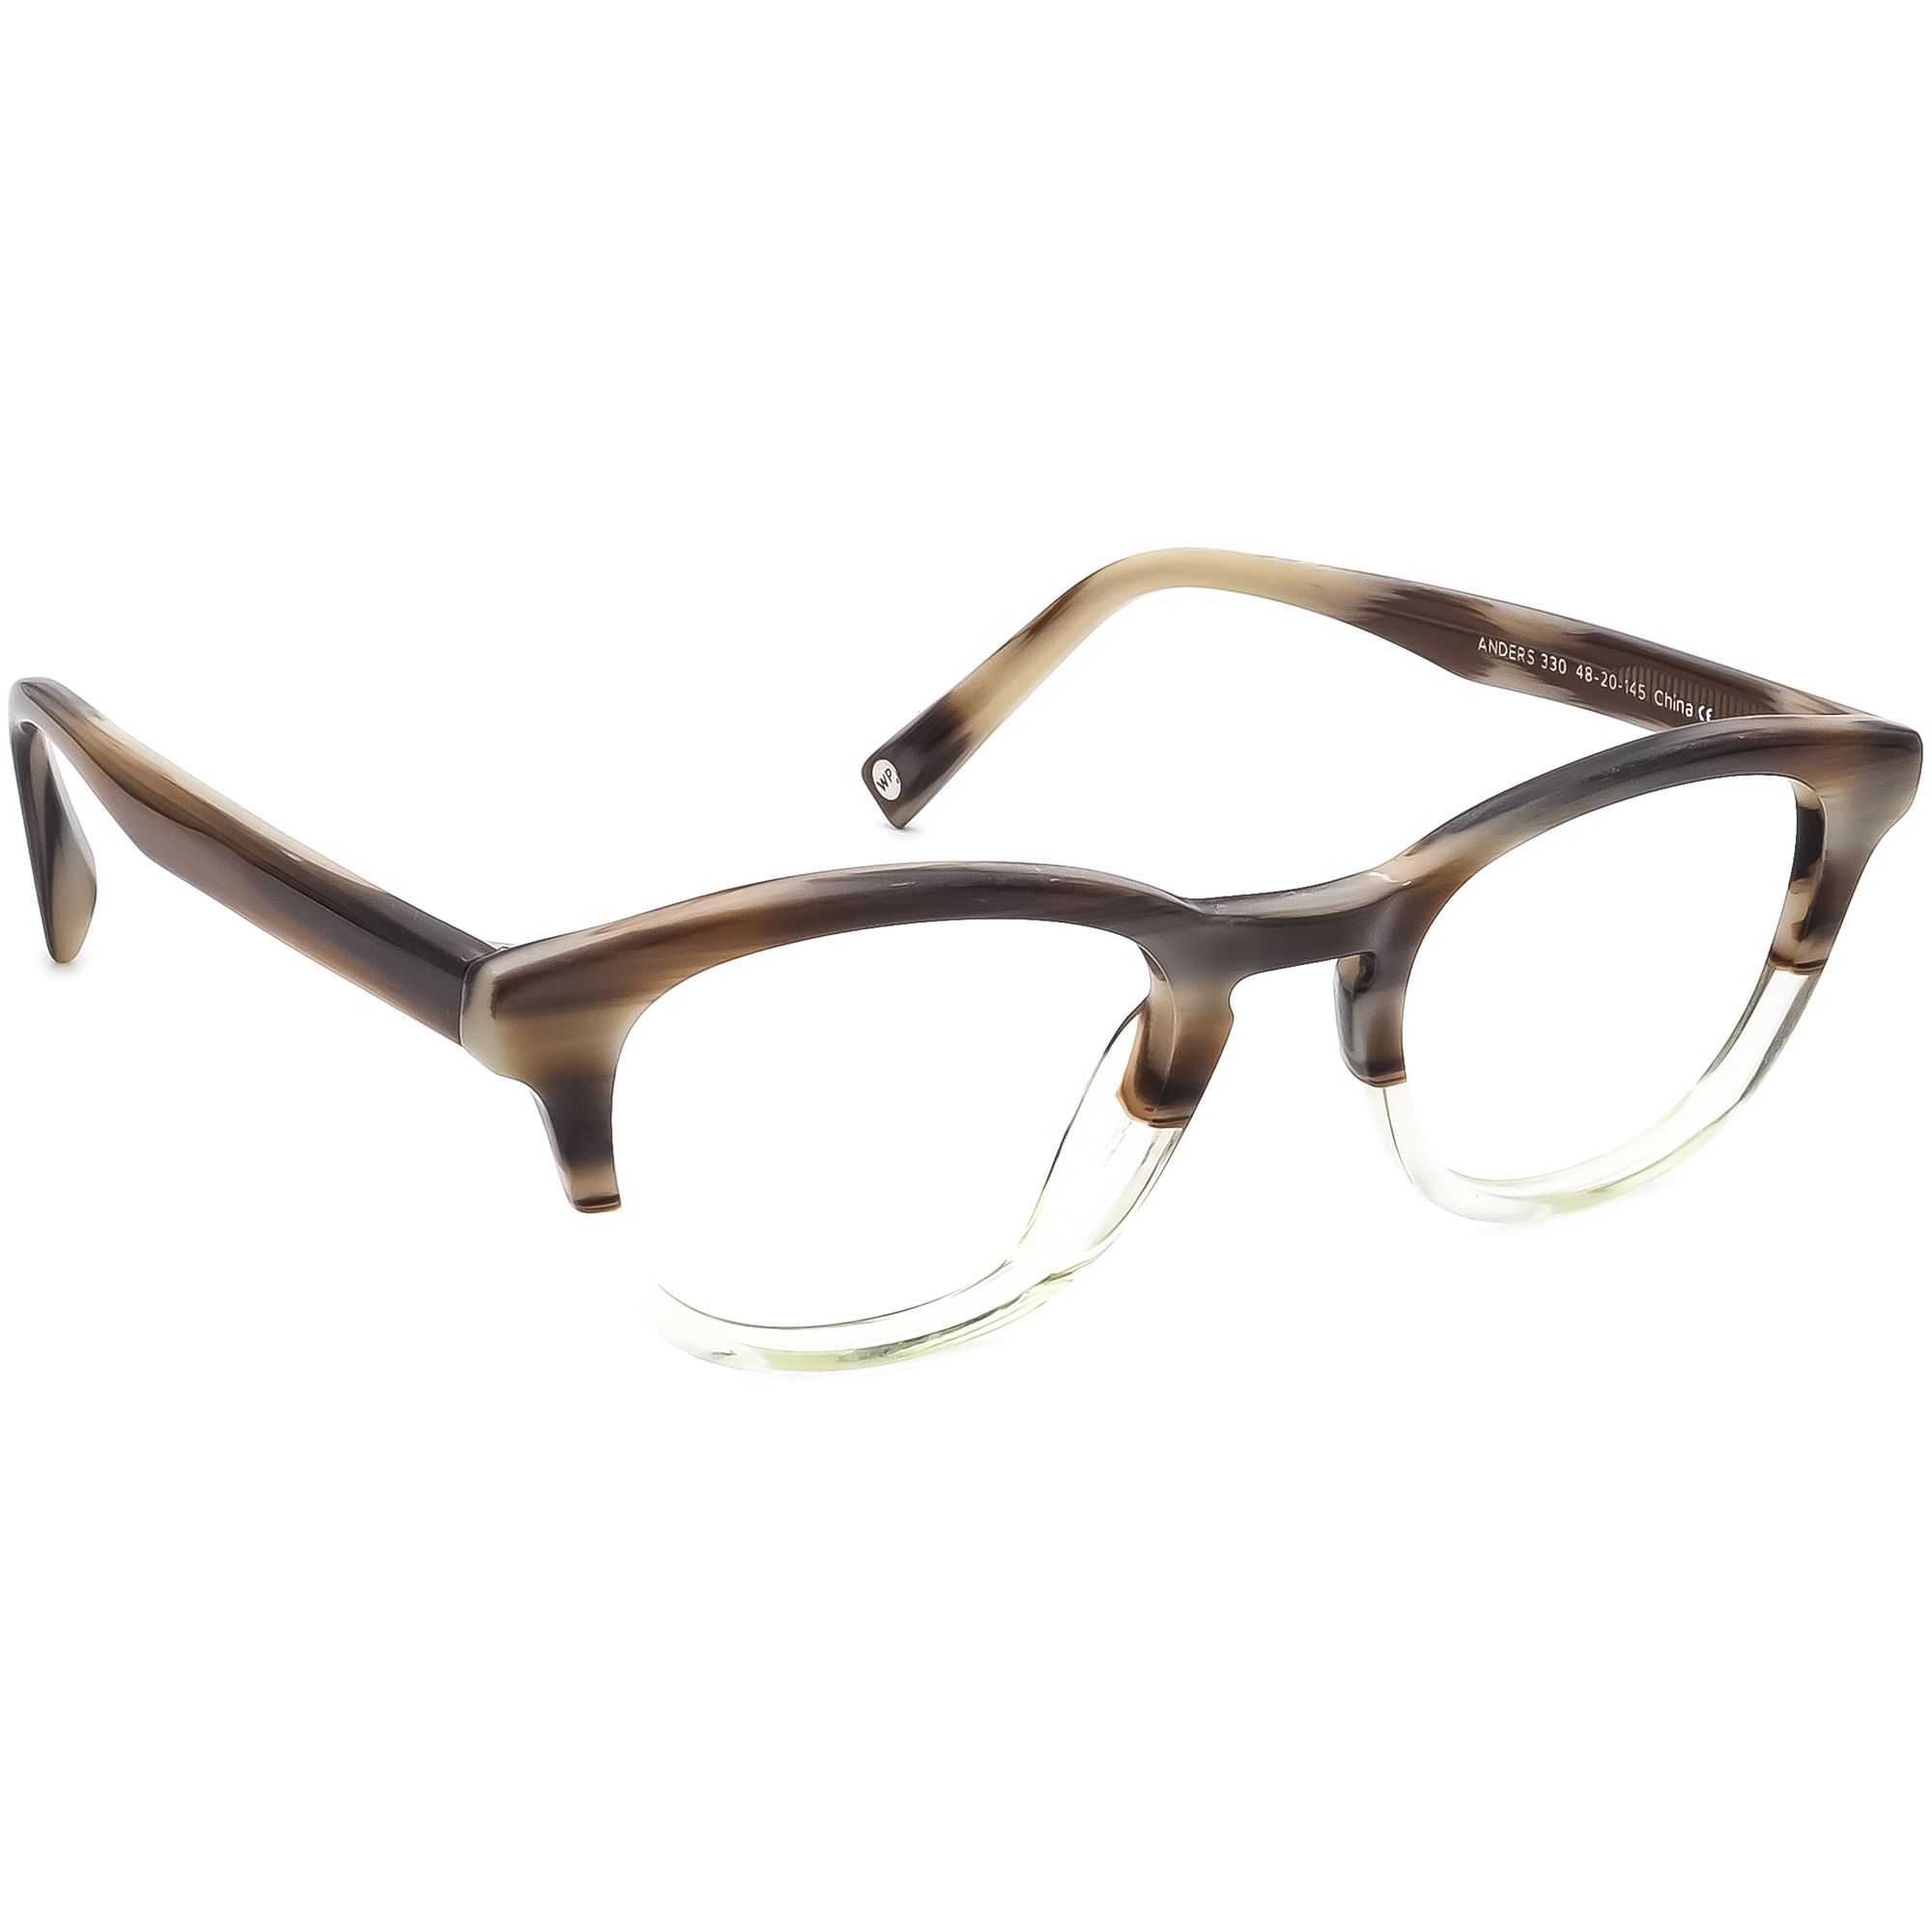 Warby Parker Eyeglasses Anders 330 Brown/Clear Full Rim Frame 48[]20 145